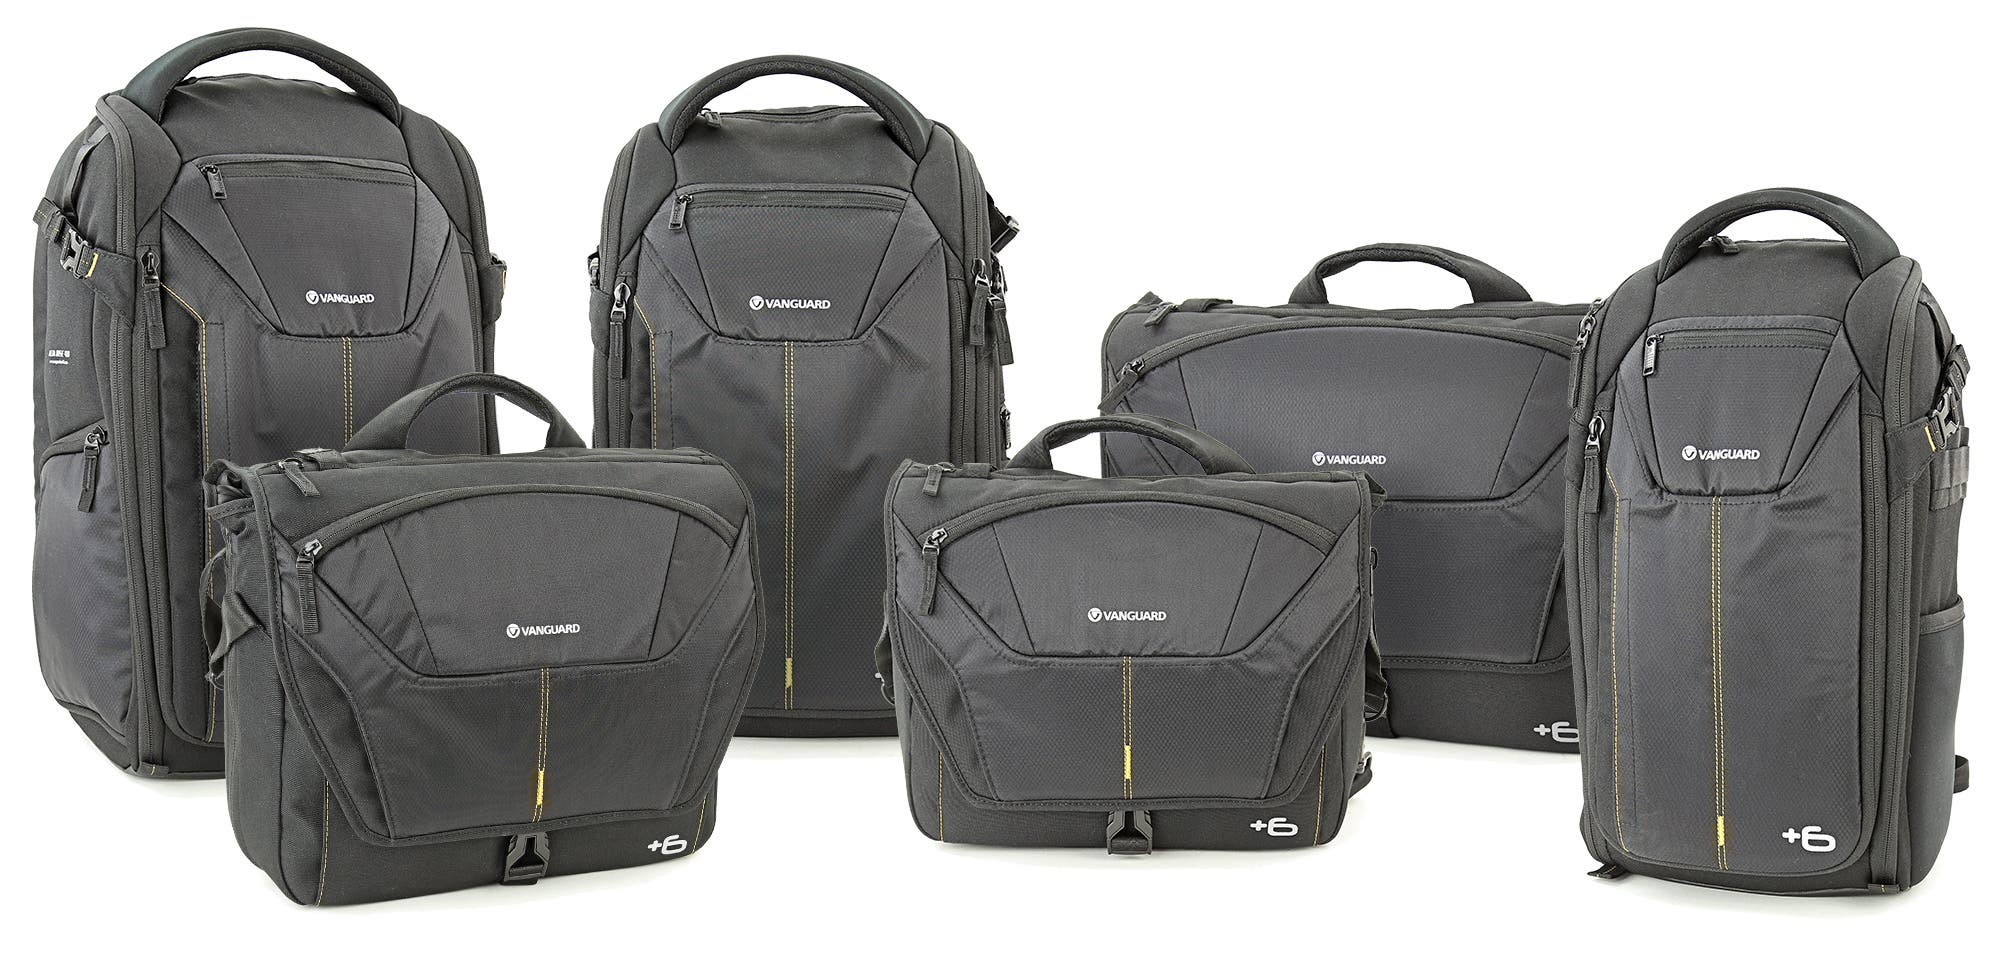 Vanguard's Expandable ALTA RISE Bags Hold Everything including the Kitchen Sink